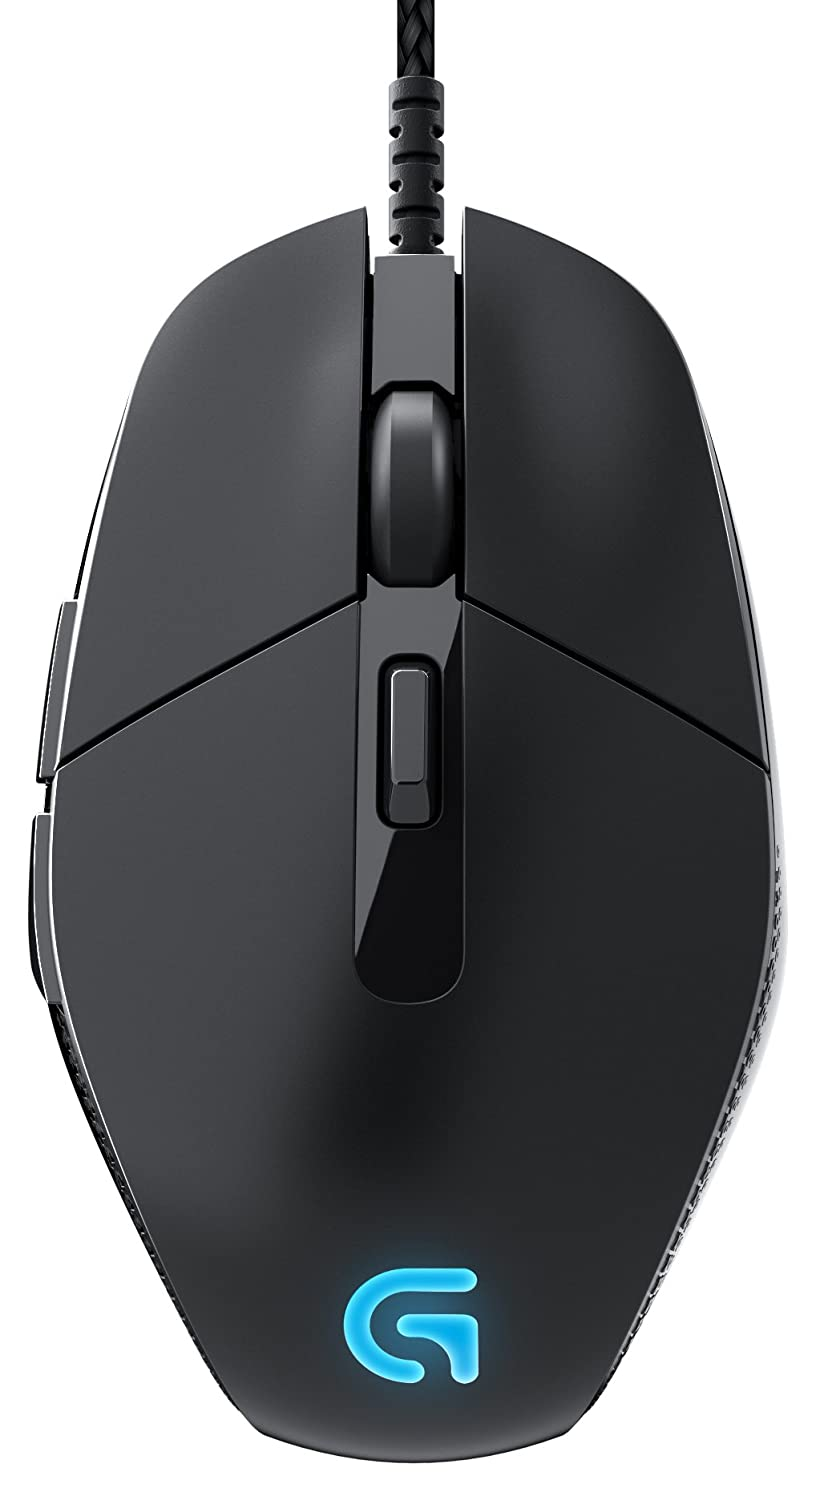 e98f1e26b94 Amazon.com: Logitech G303 Daedalus Apex Performance Edition Gaming Mouse:  Computers & Accessories